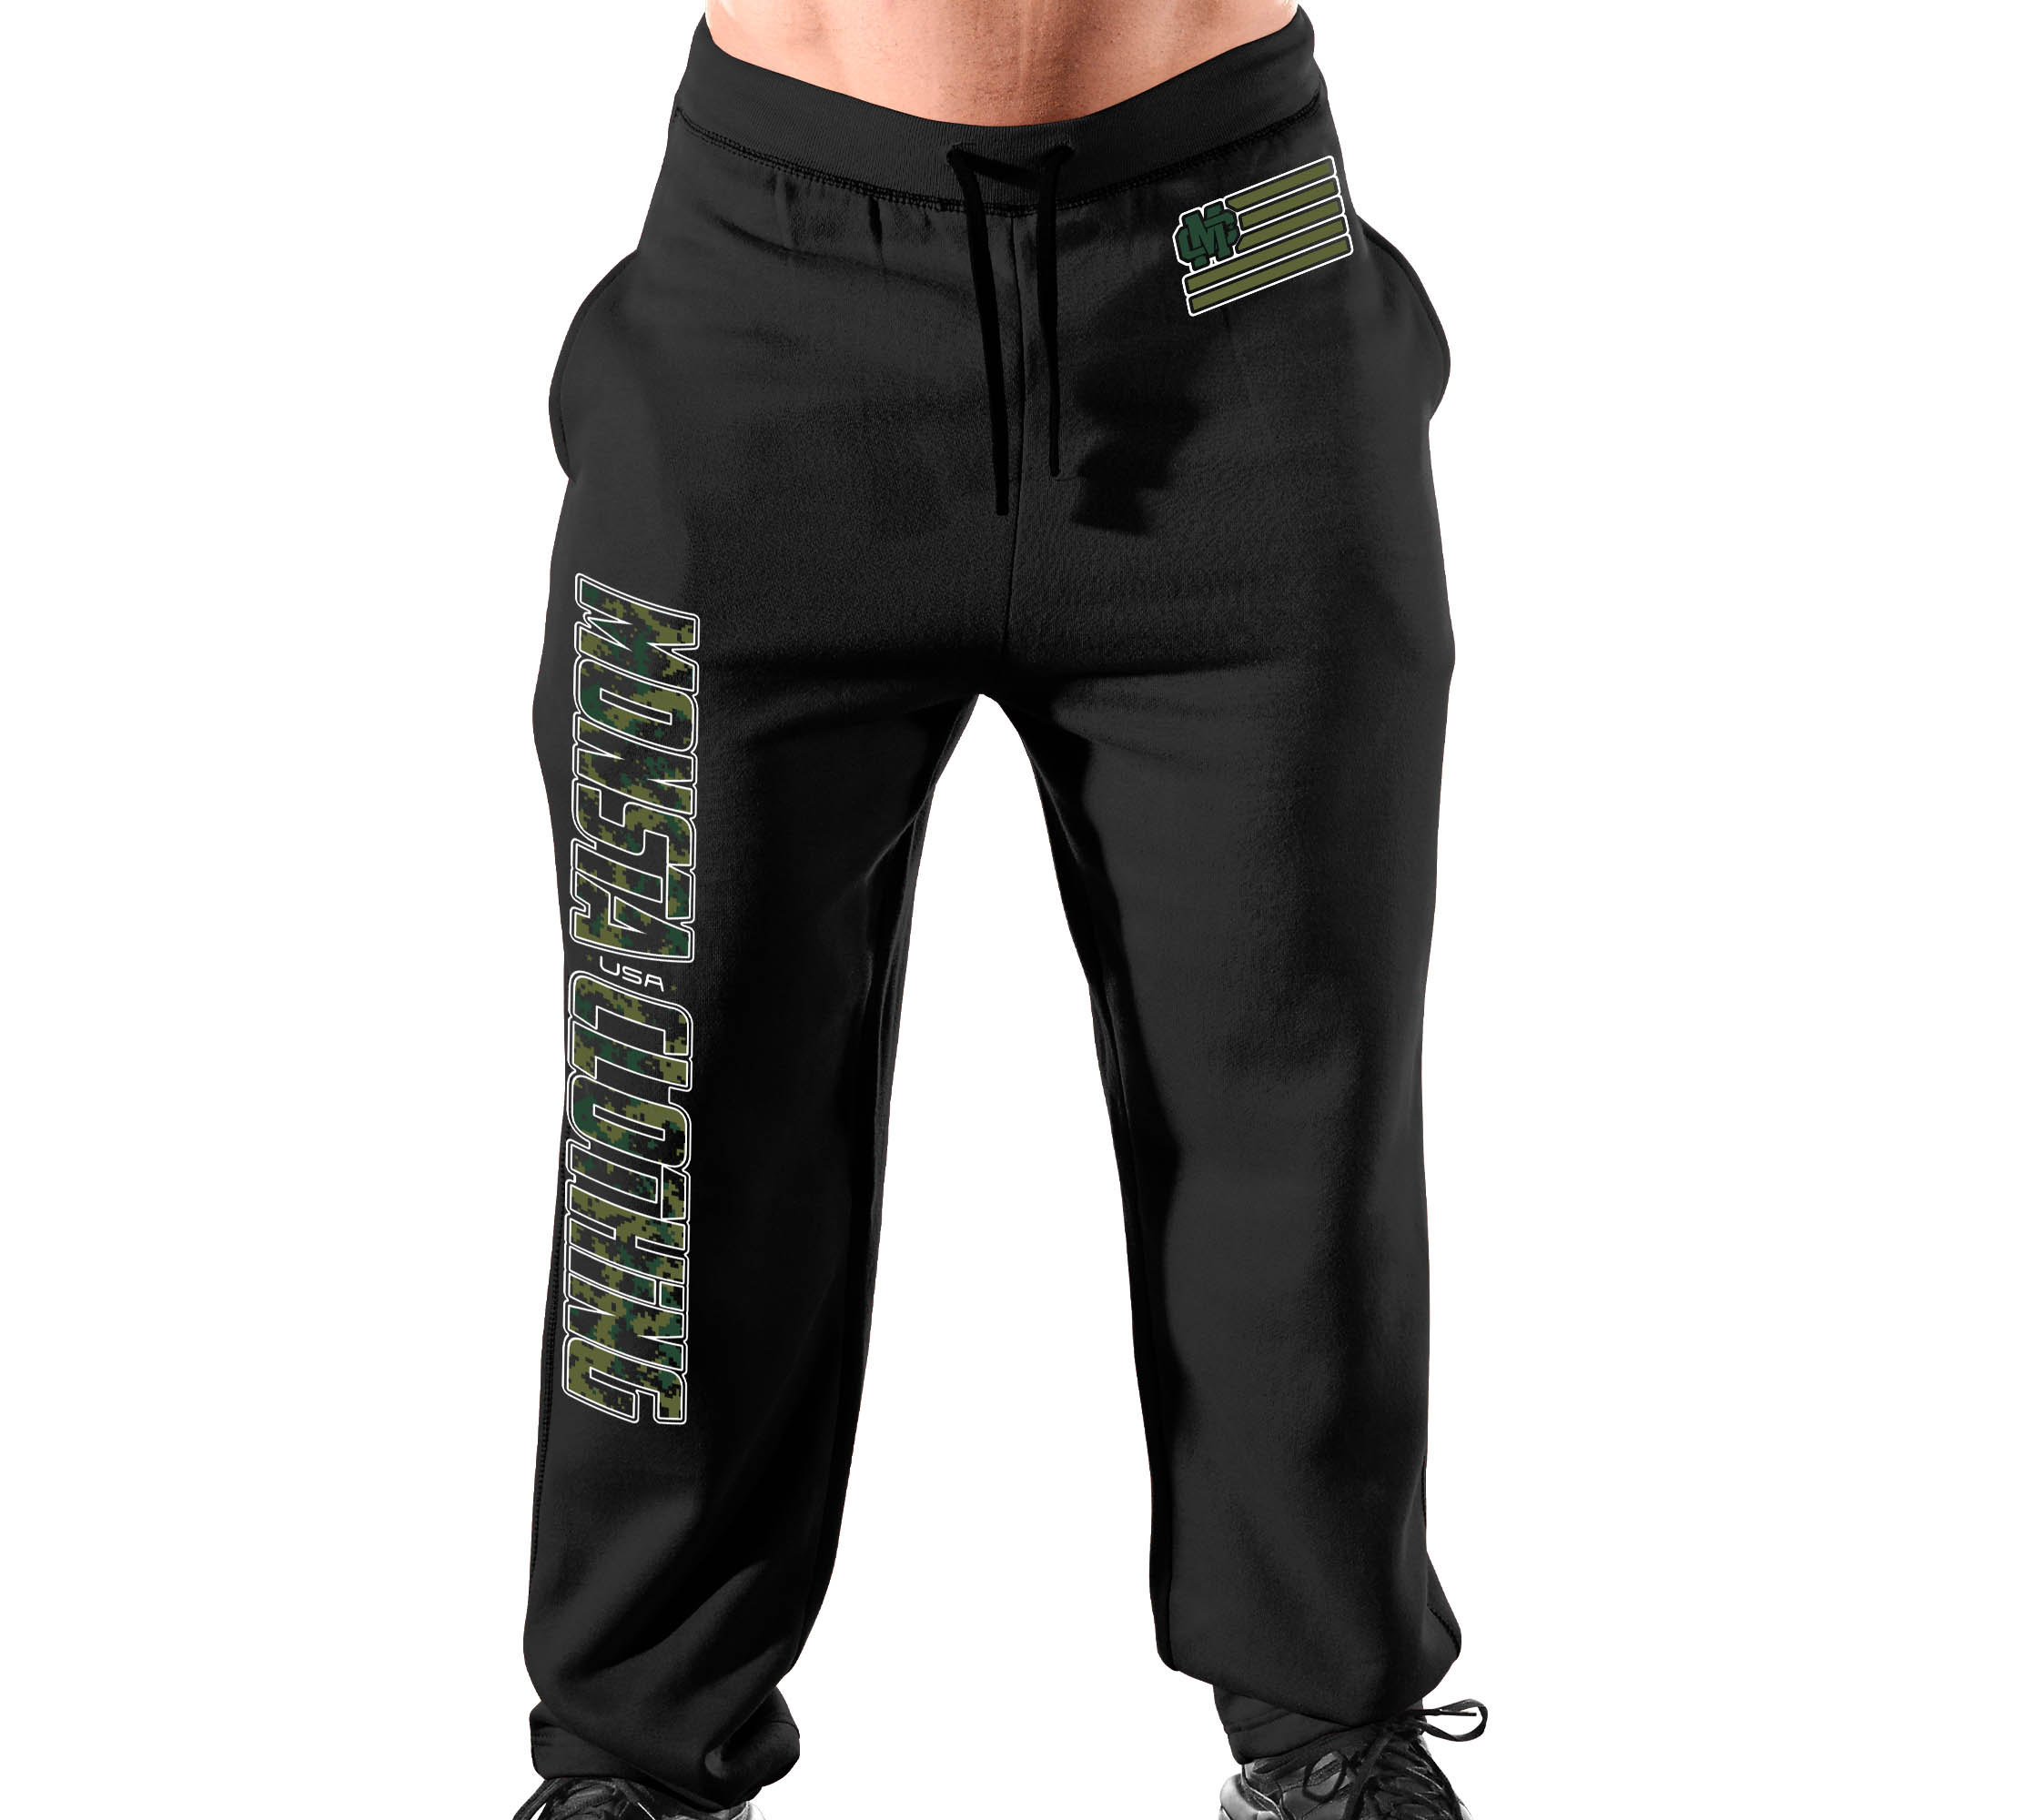 Monsta Clothing Men/'s Open Bottom Tap or Blead Sweatpants For Gym Grey